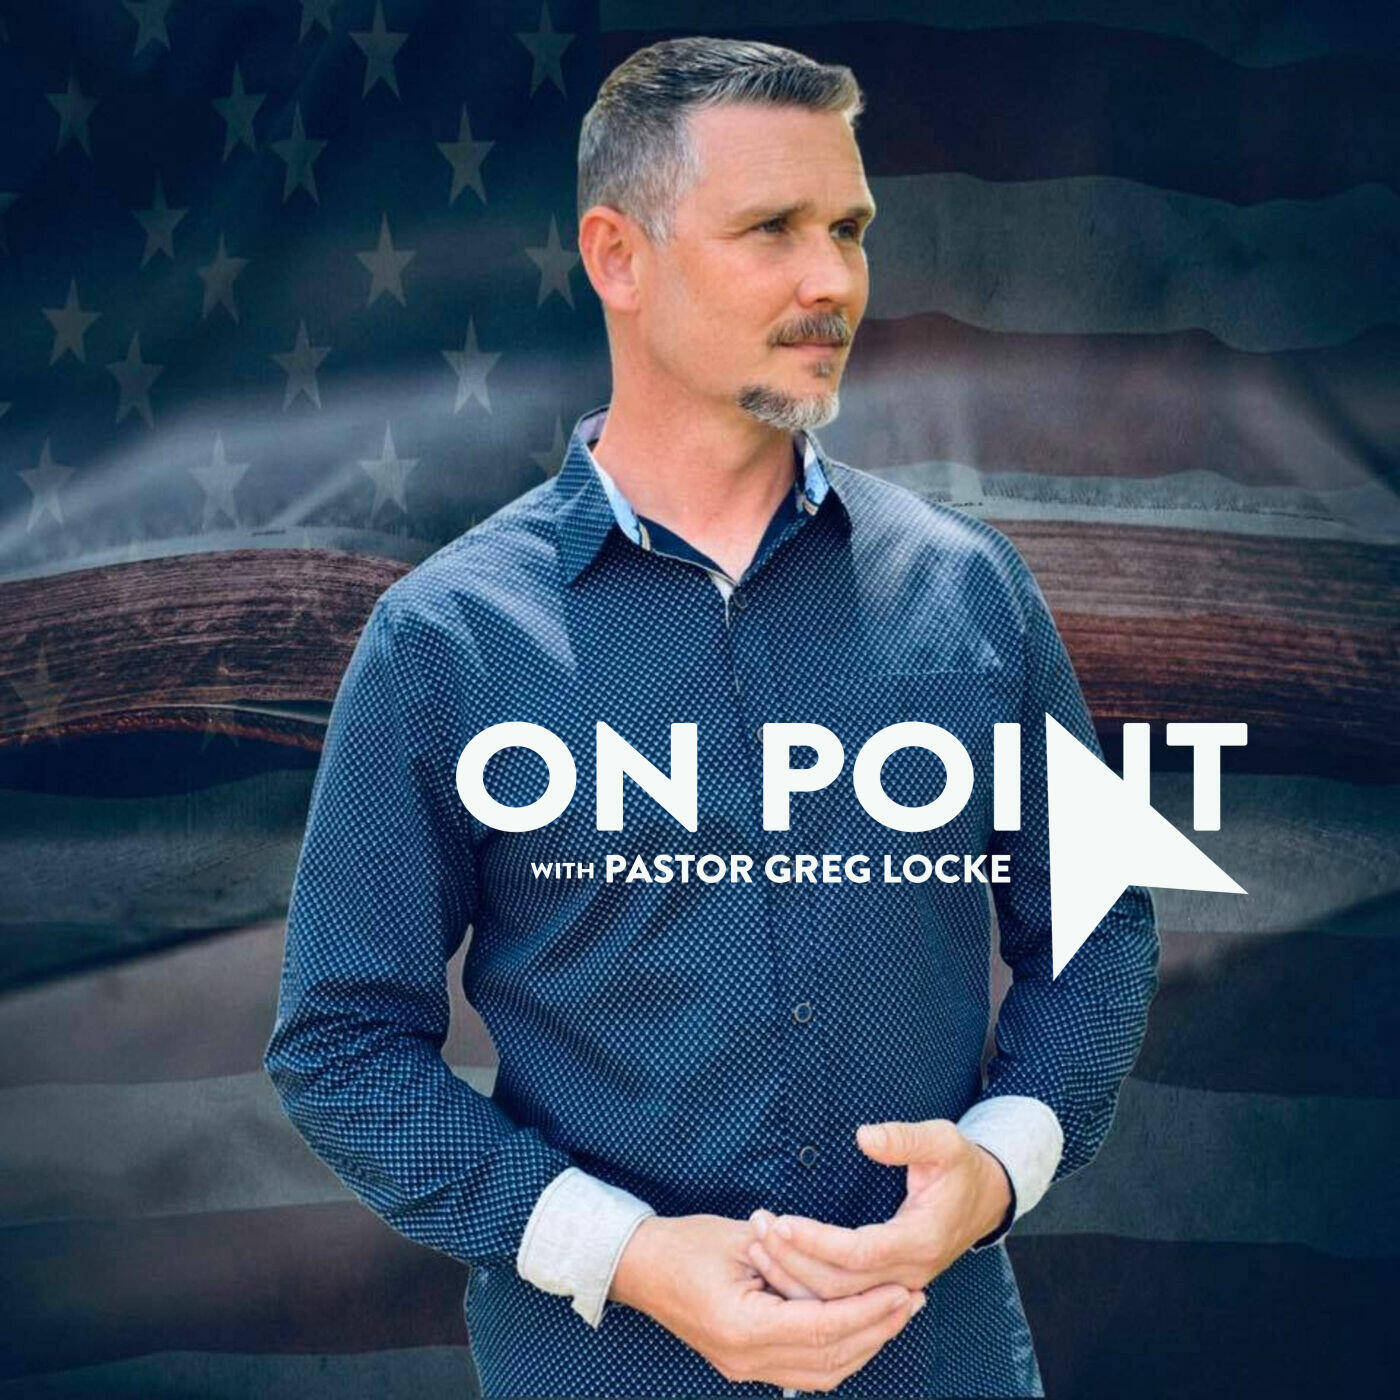 On Point With Pastor Greg Locke